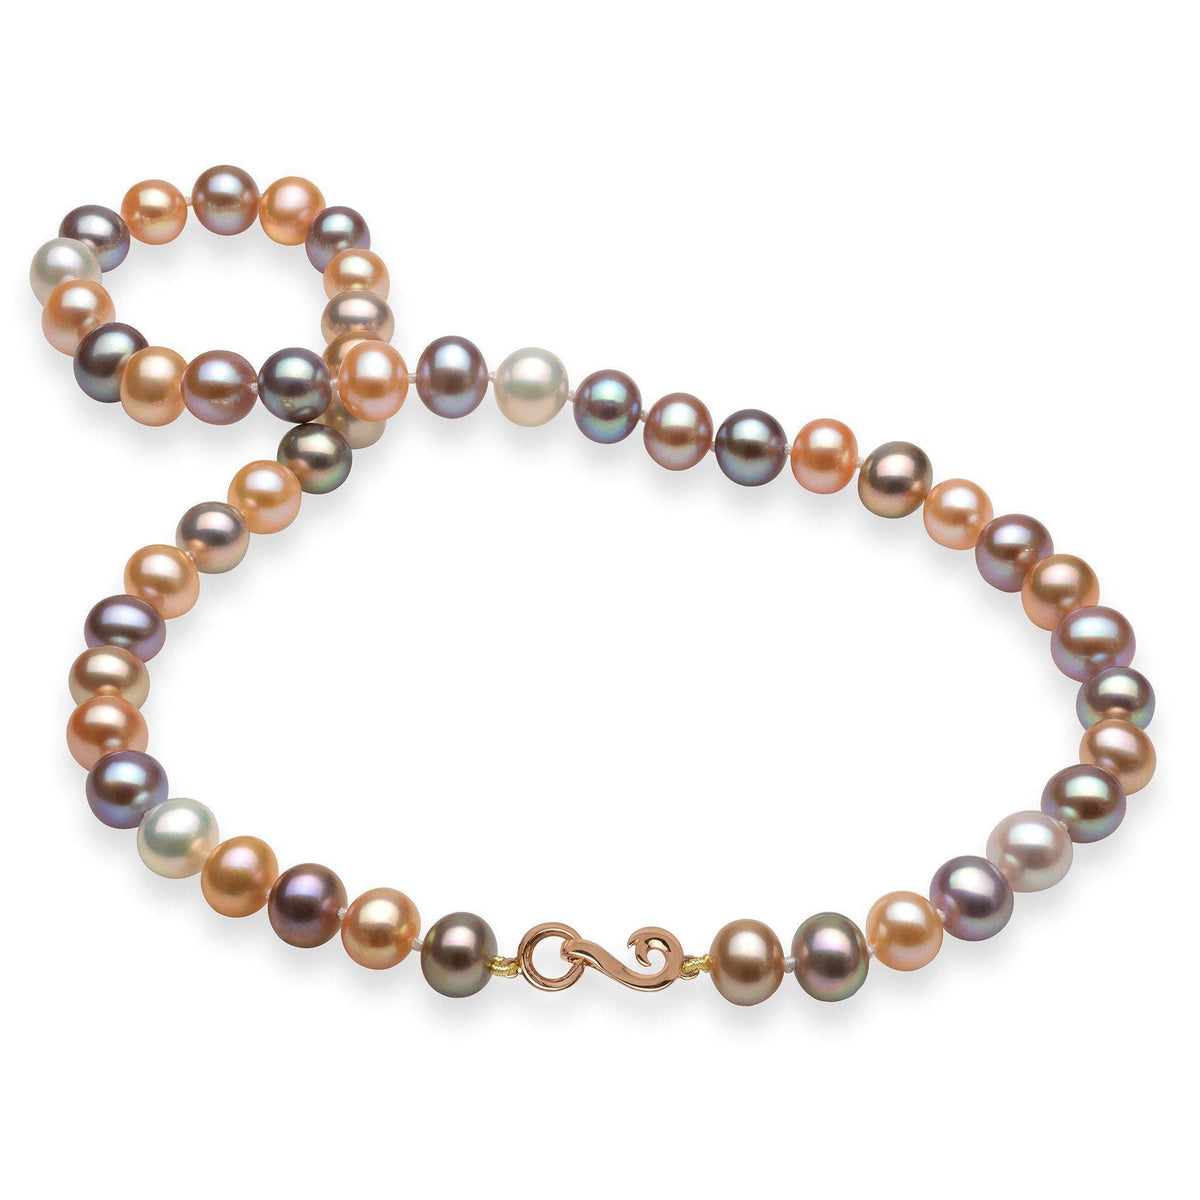 Freshwater Pearl (8-9.5mm) Strand in 14K Rose Gold 006-14977